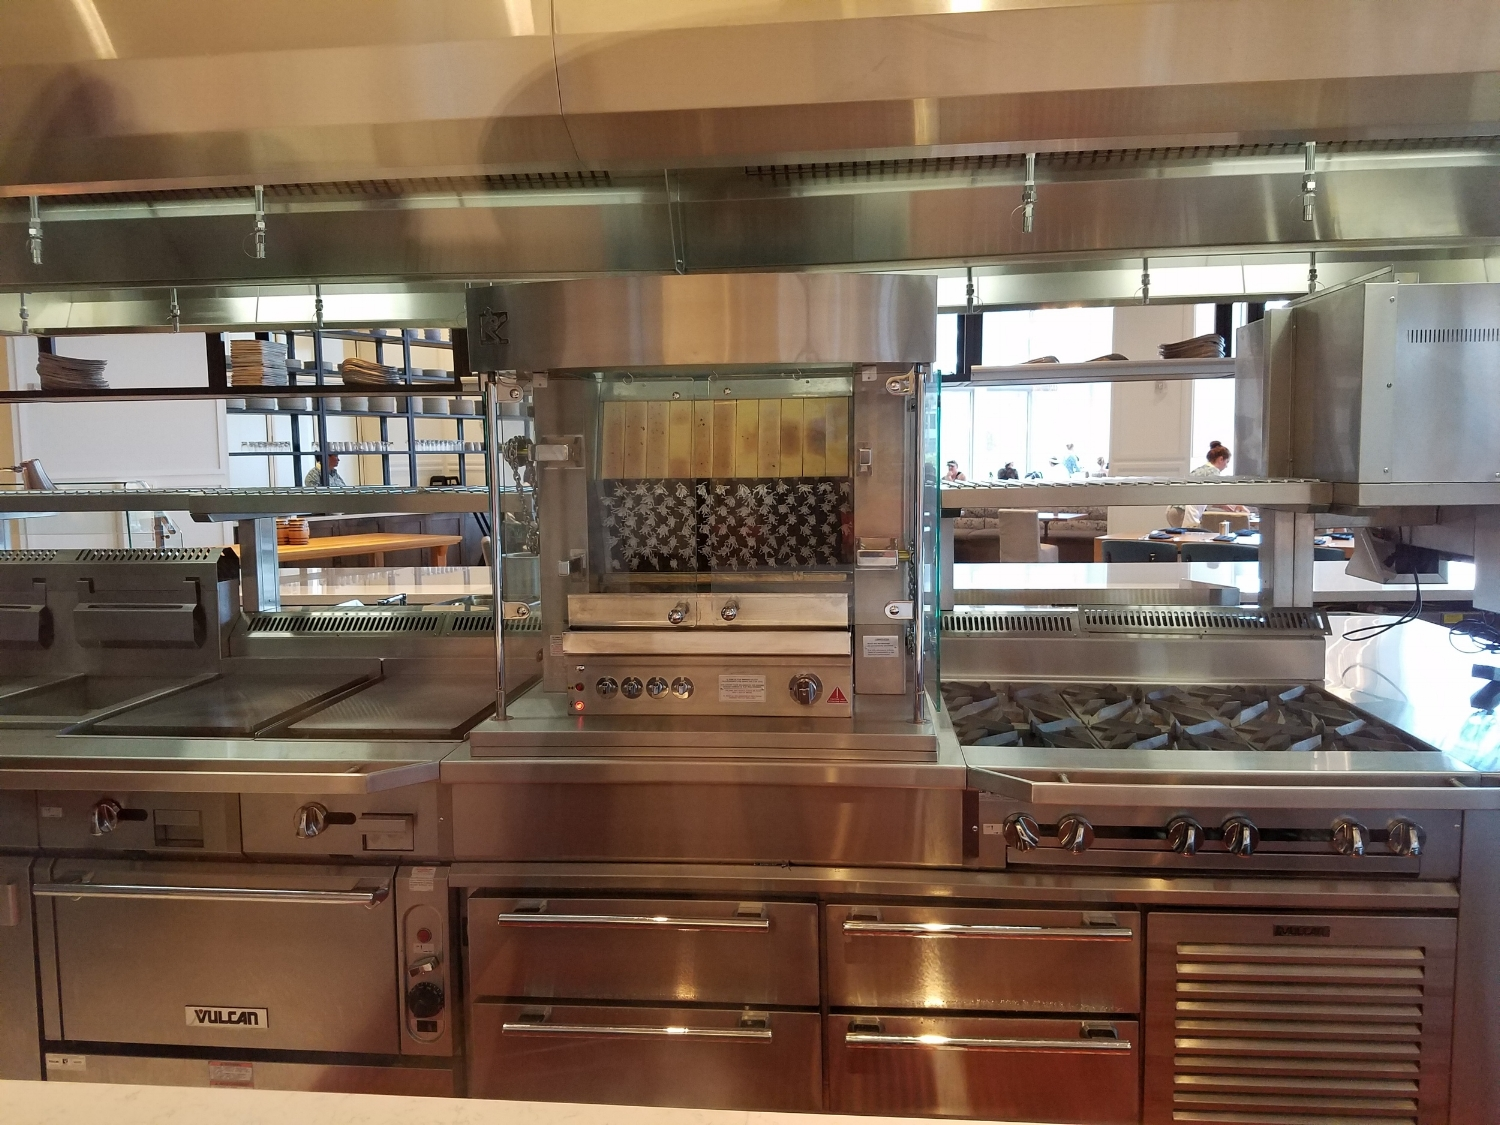 View of the Kitchen in Amatista Cookhouse